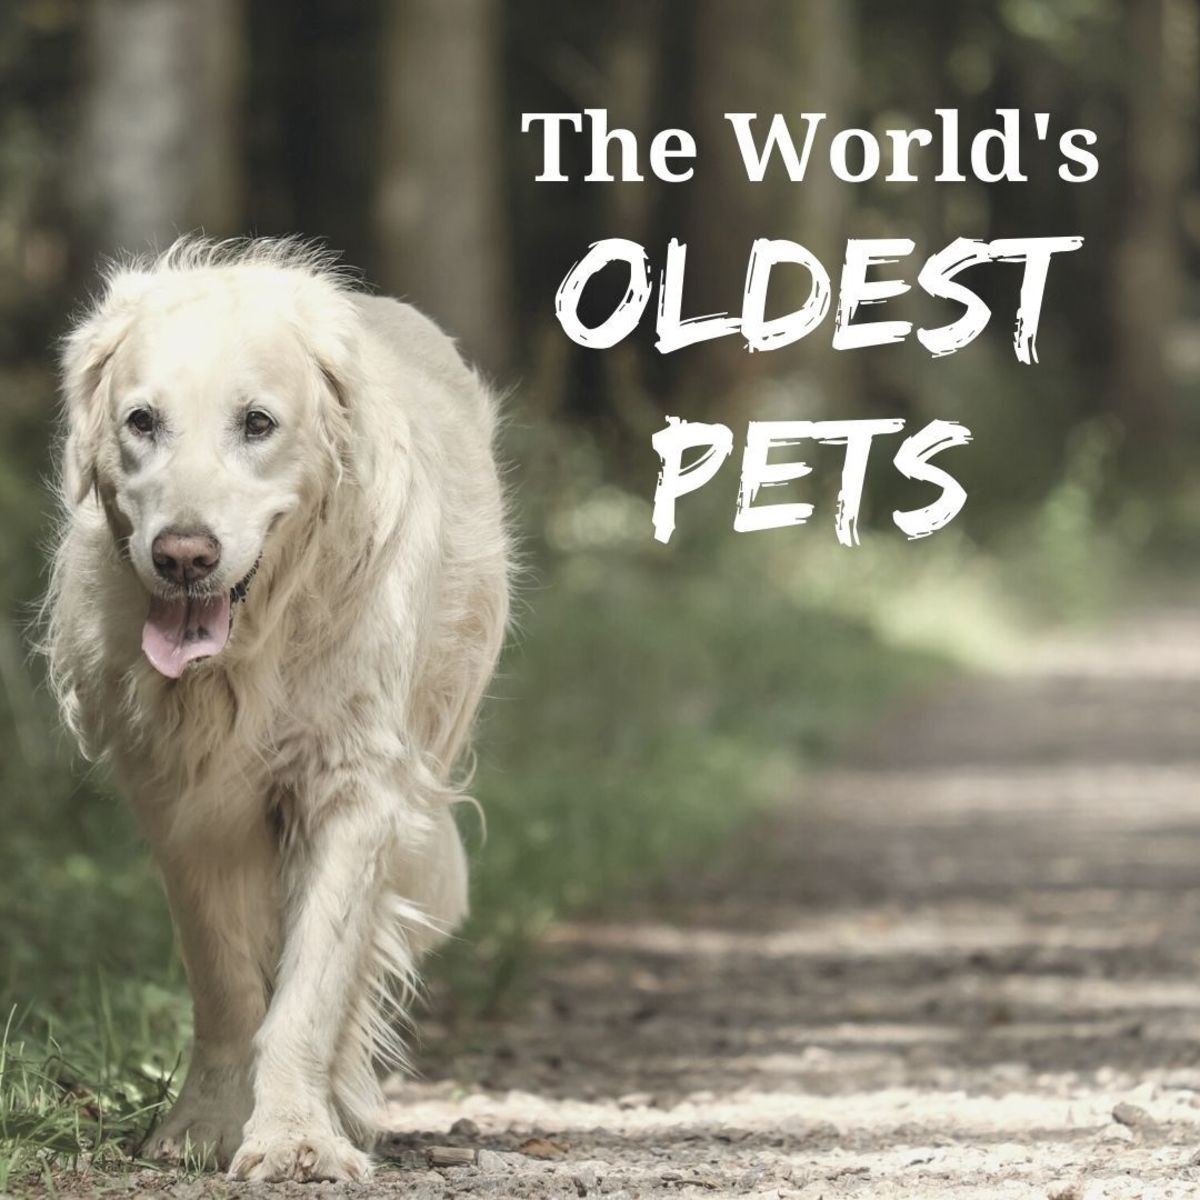 The oldest pets in the world